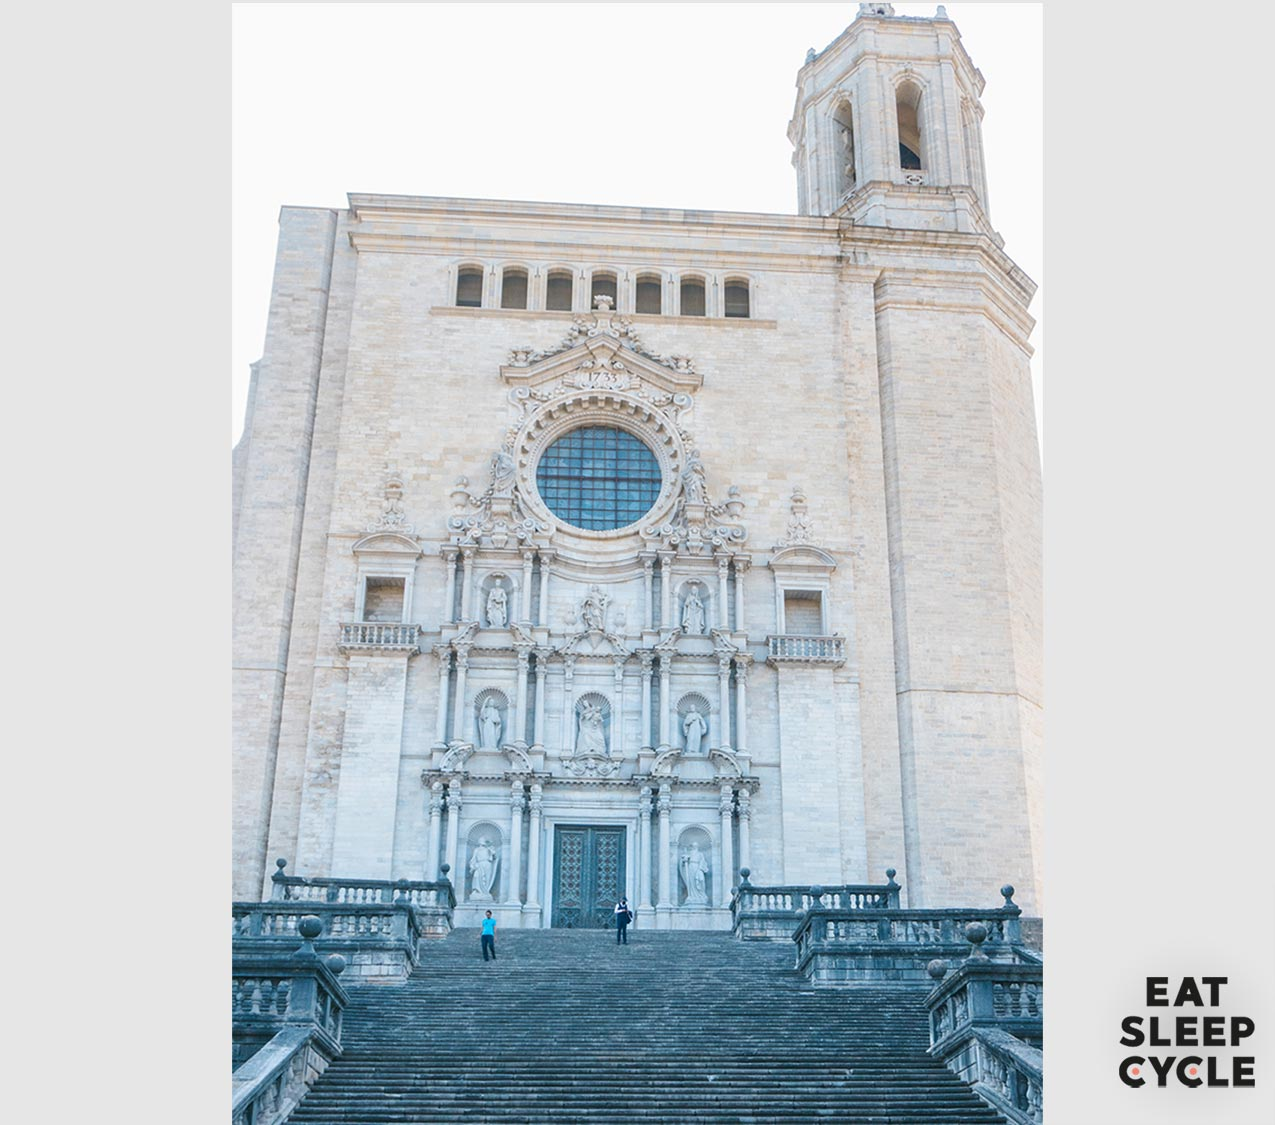 Cafe-Crowdfunding-Campaign-Eat-Sleep-Cycle-Catheddral-Sant-Marie